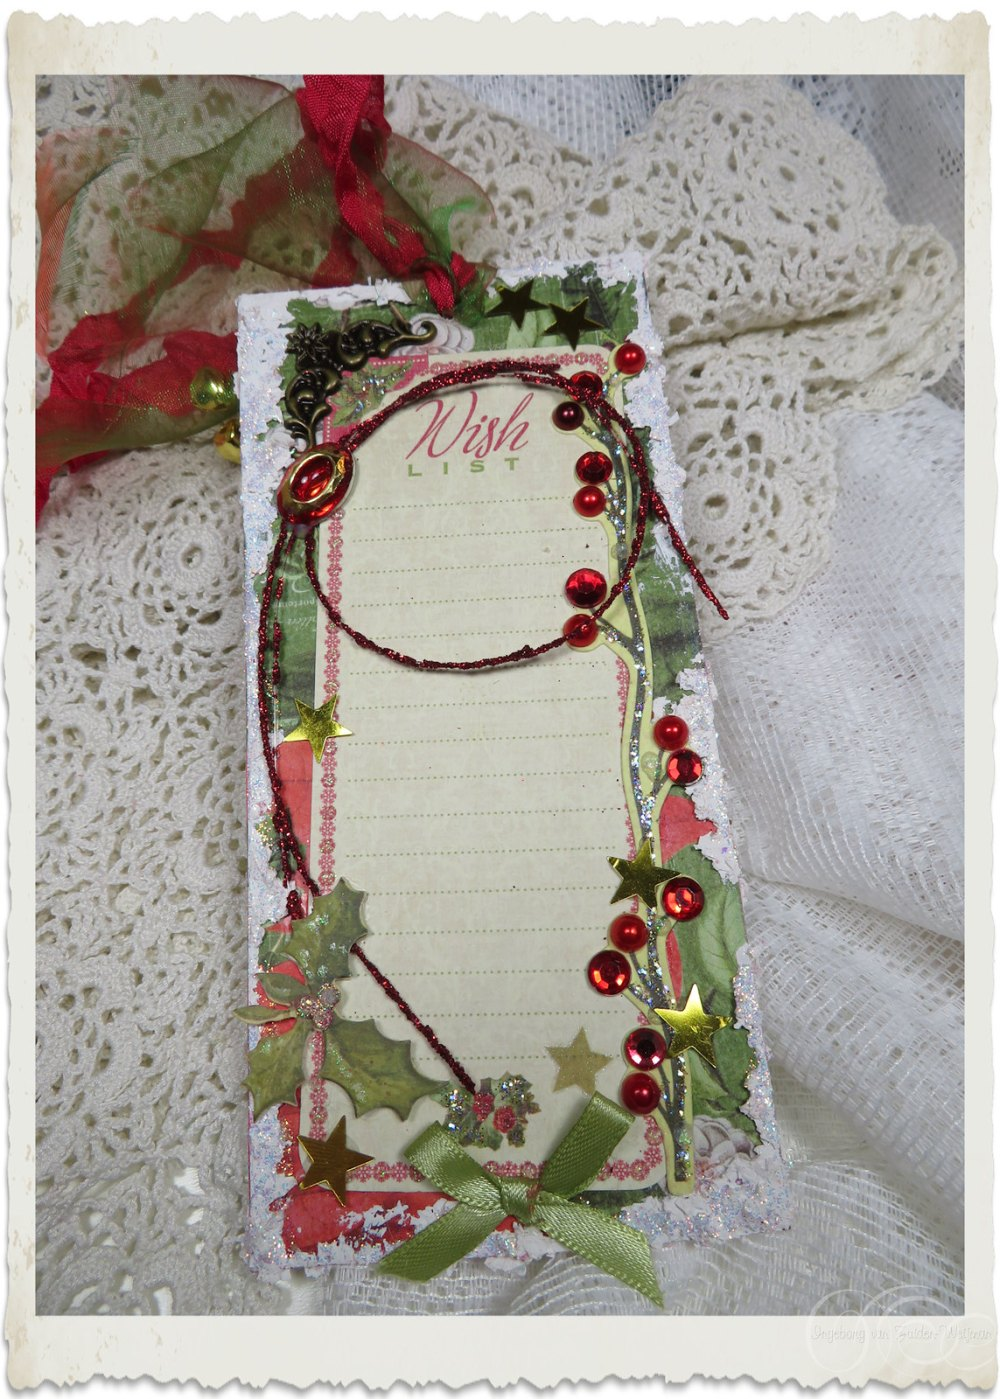 Backside of handmade Christmas hanger with wish list by Ingeborg van Zuiden